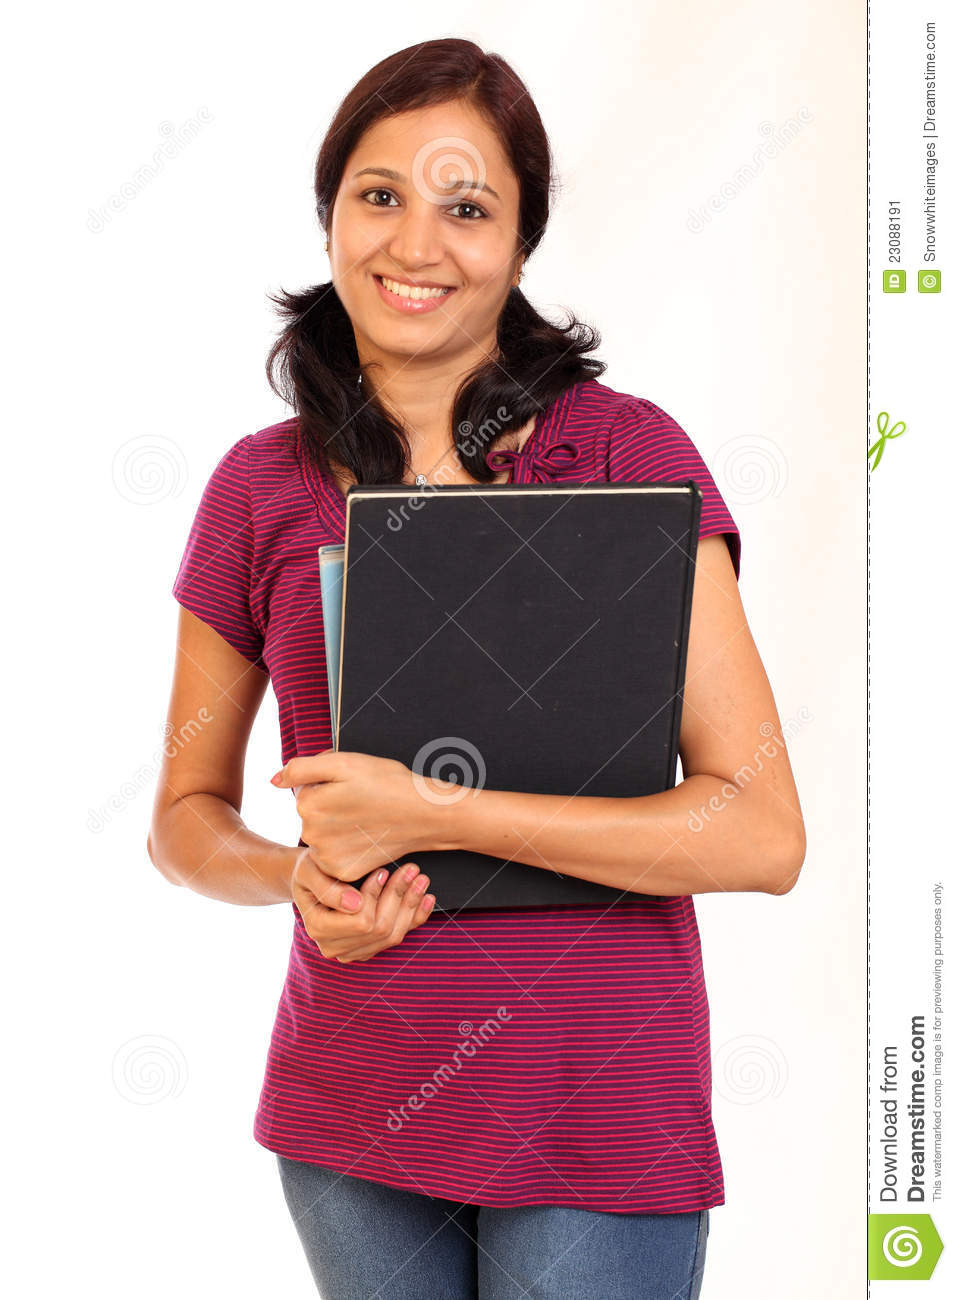 Indian College Student Stock Image - Image: 23088191